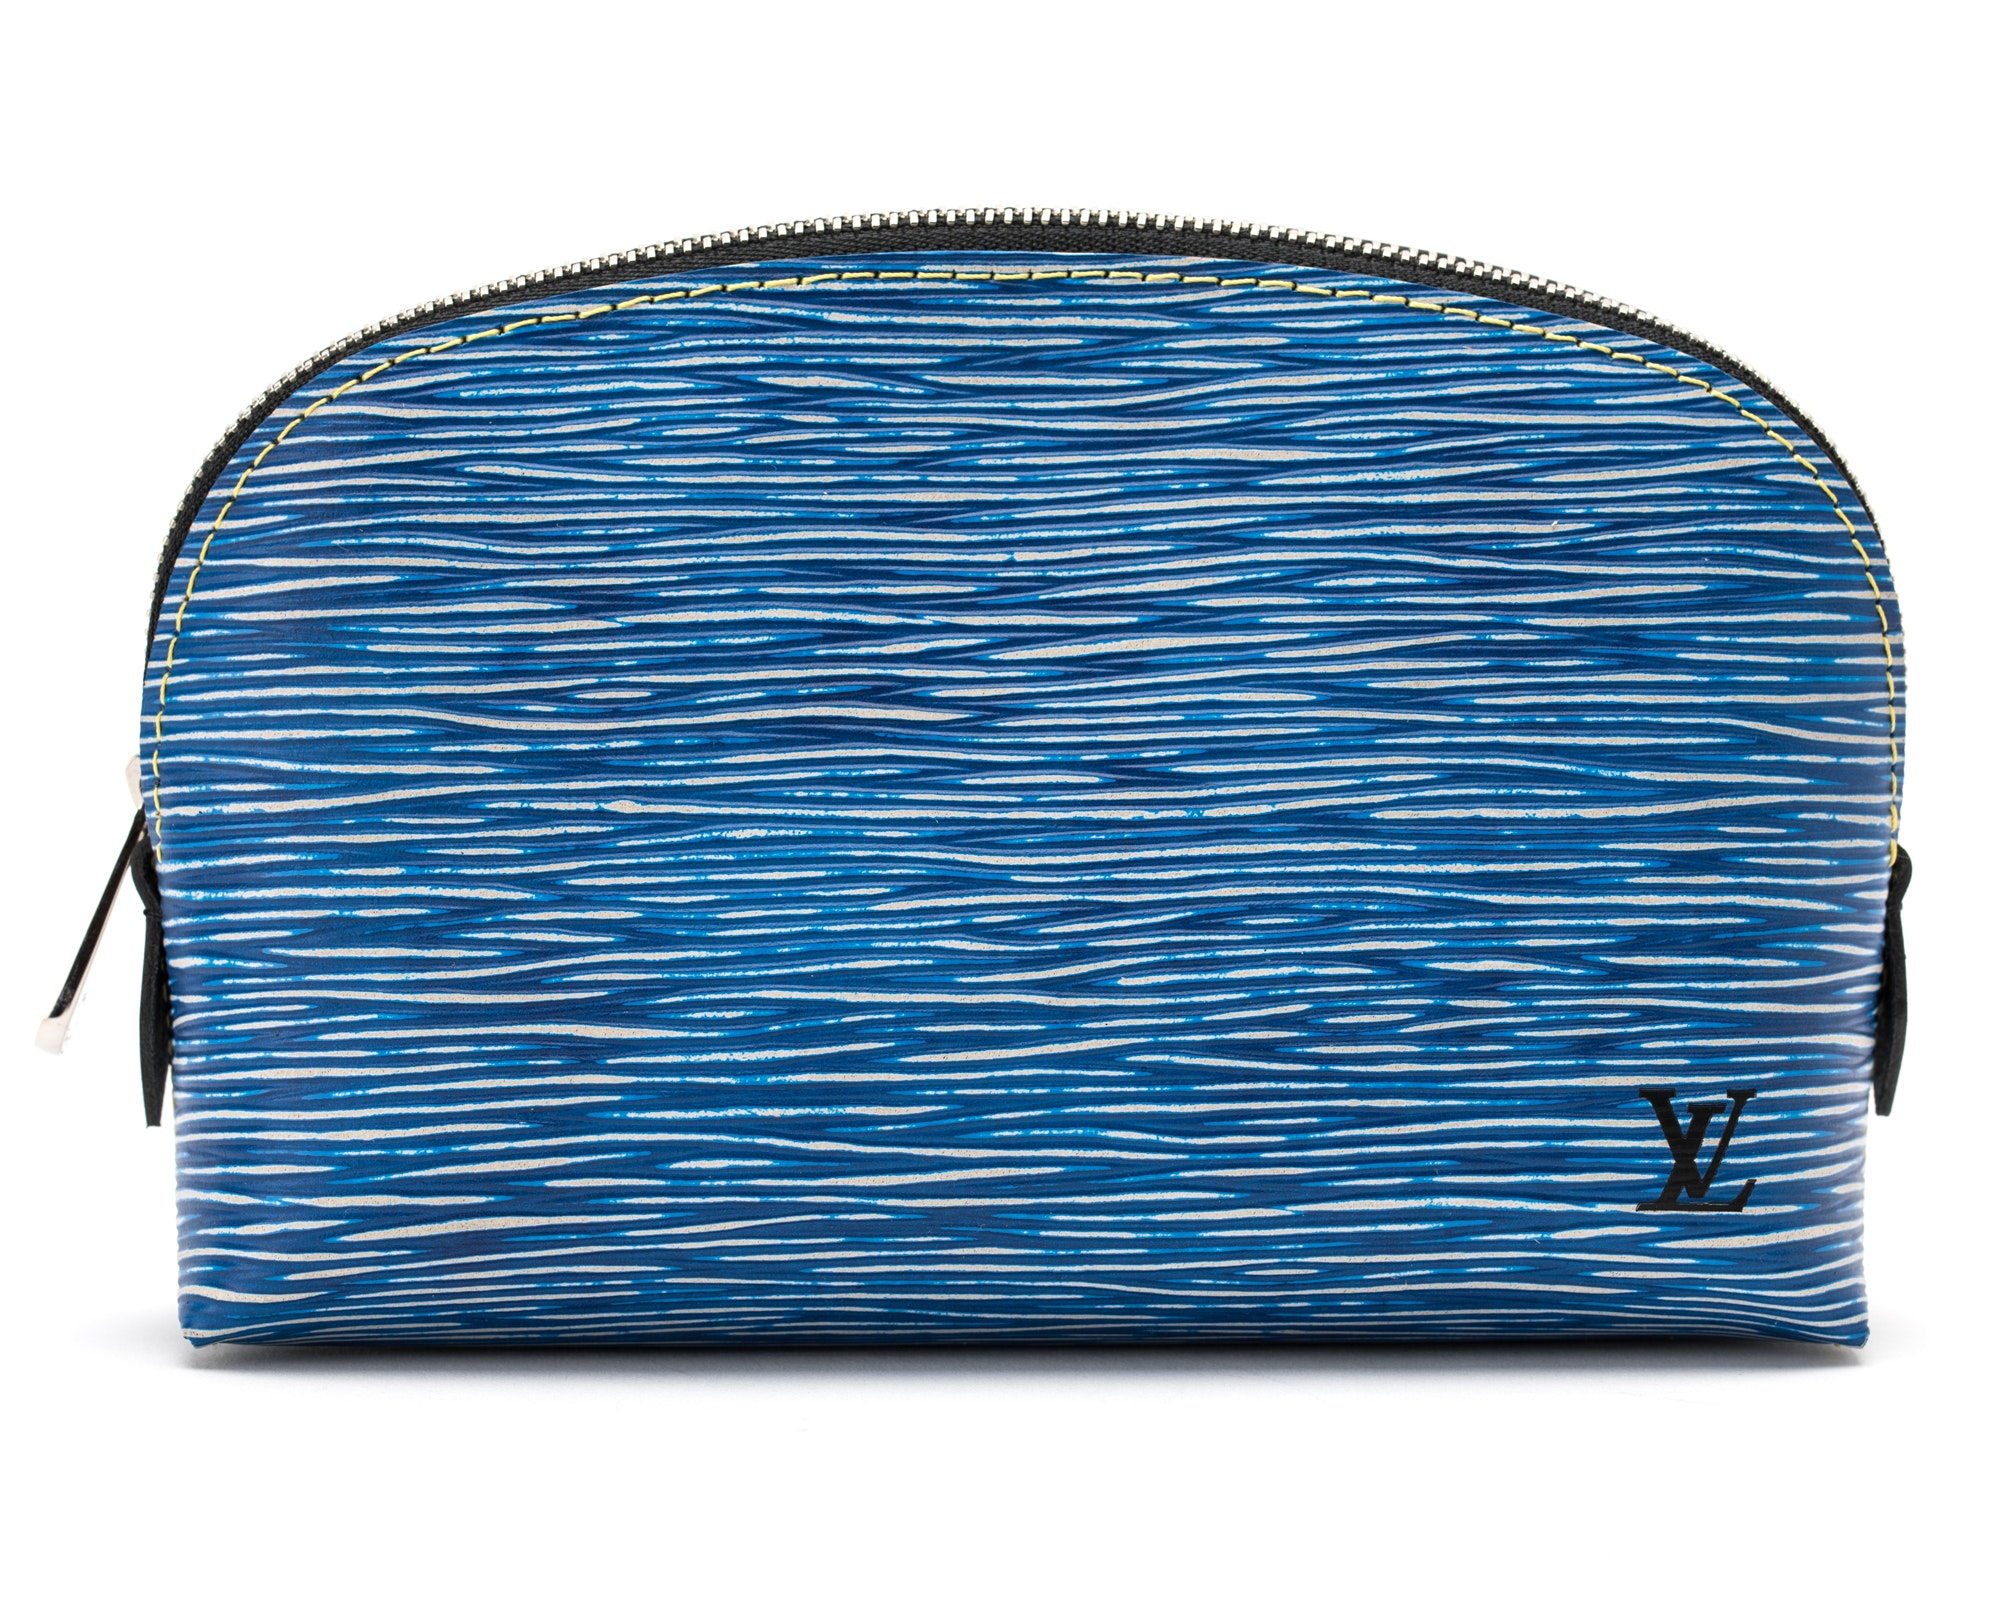 Louis Vuitton Cosmetic Pouch Epi Denim Blue